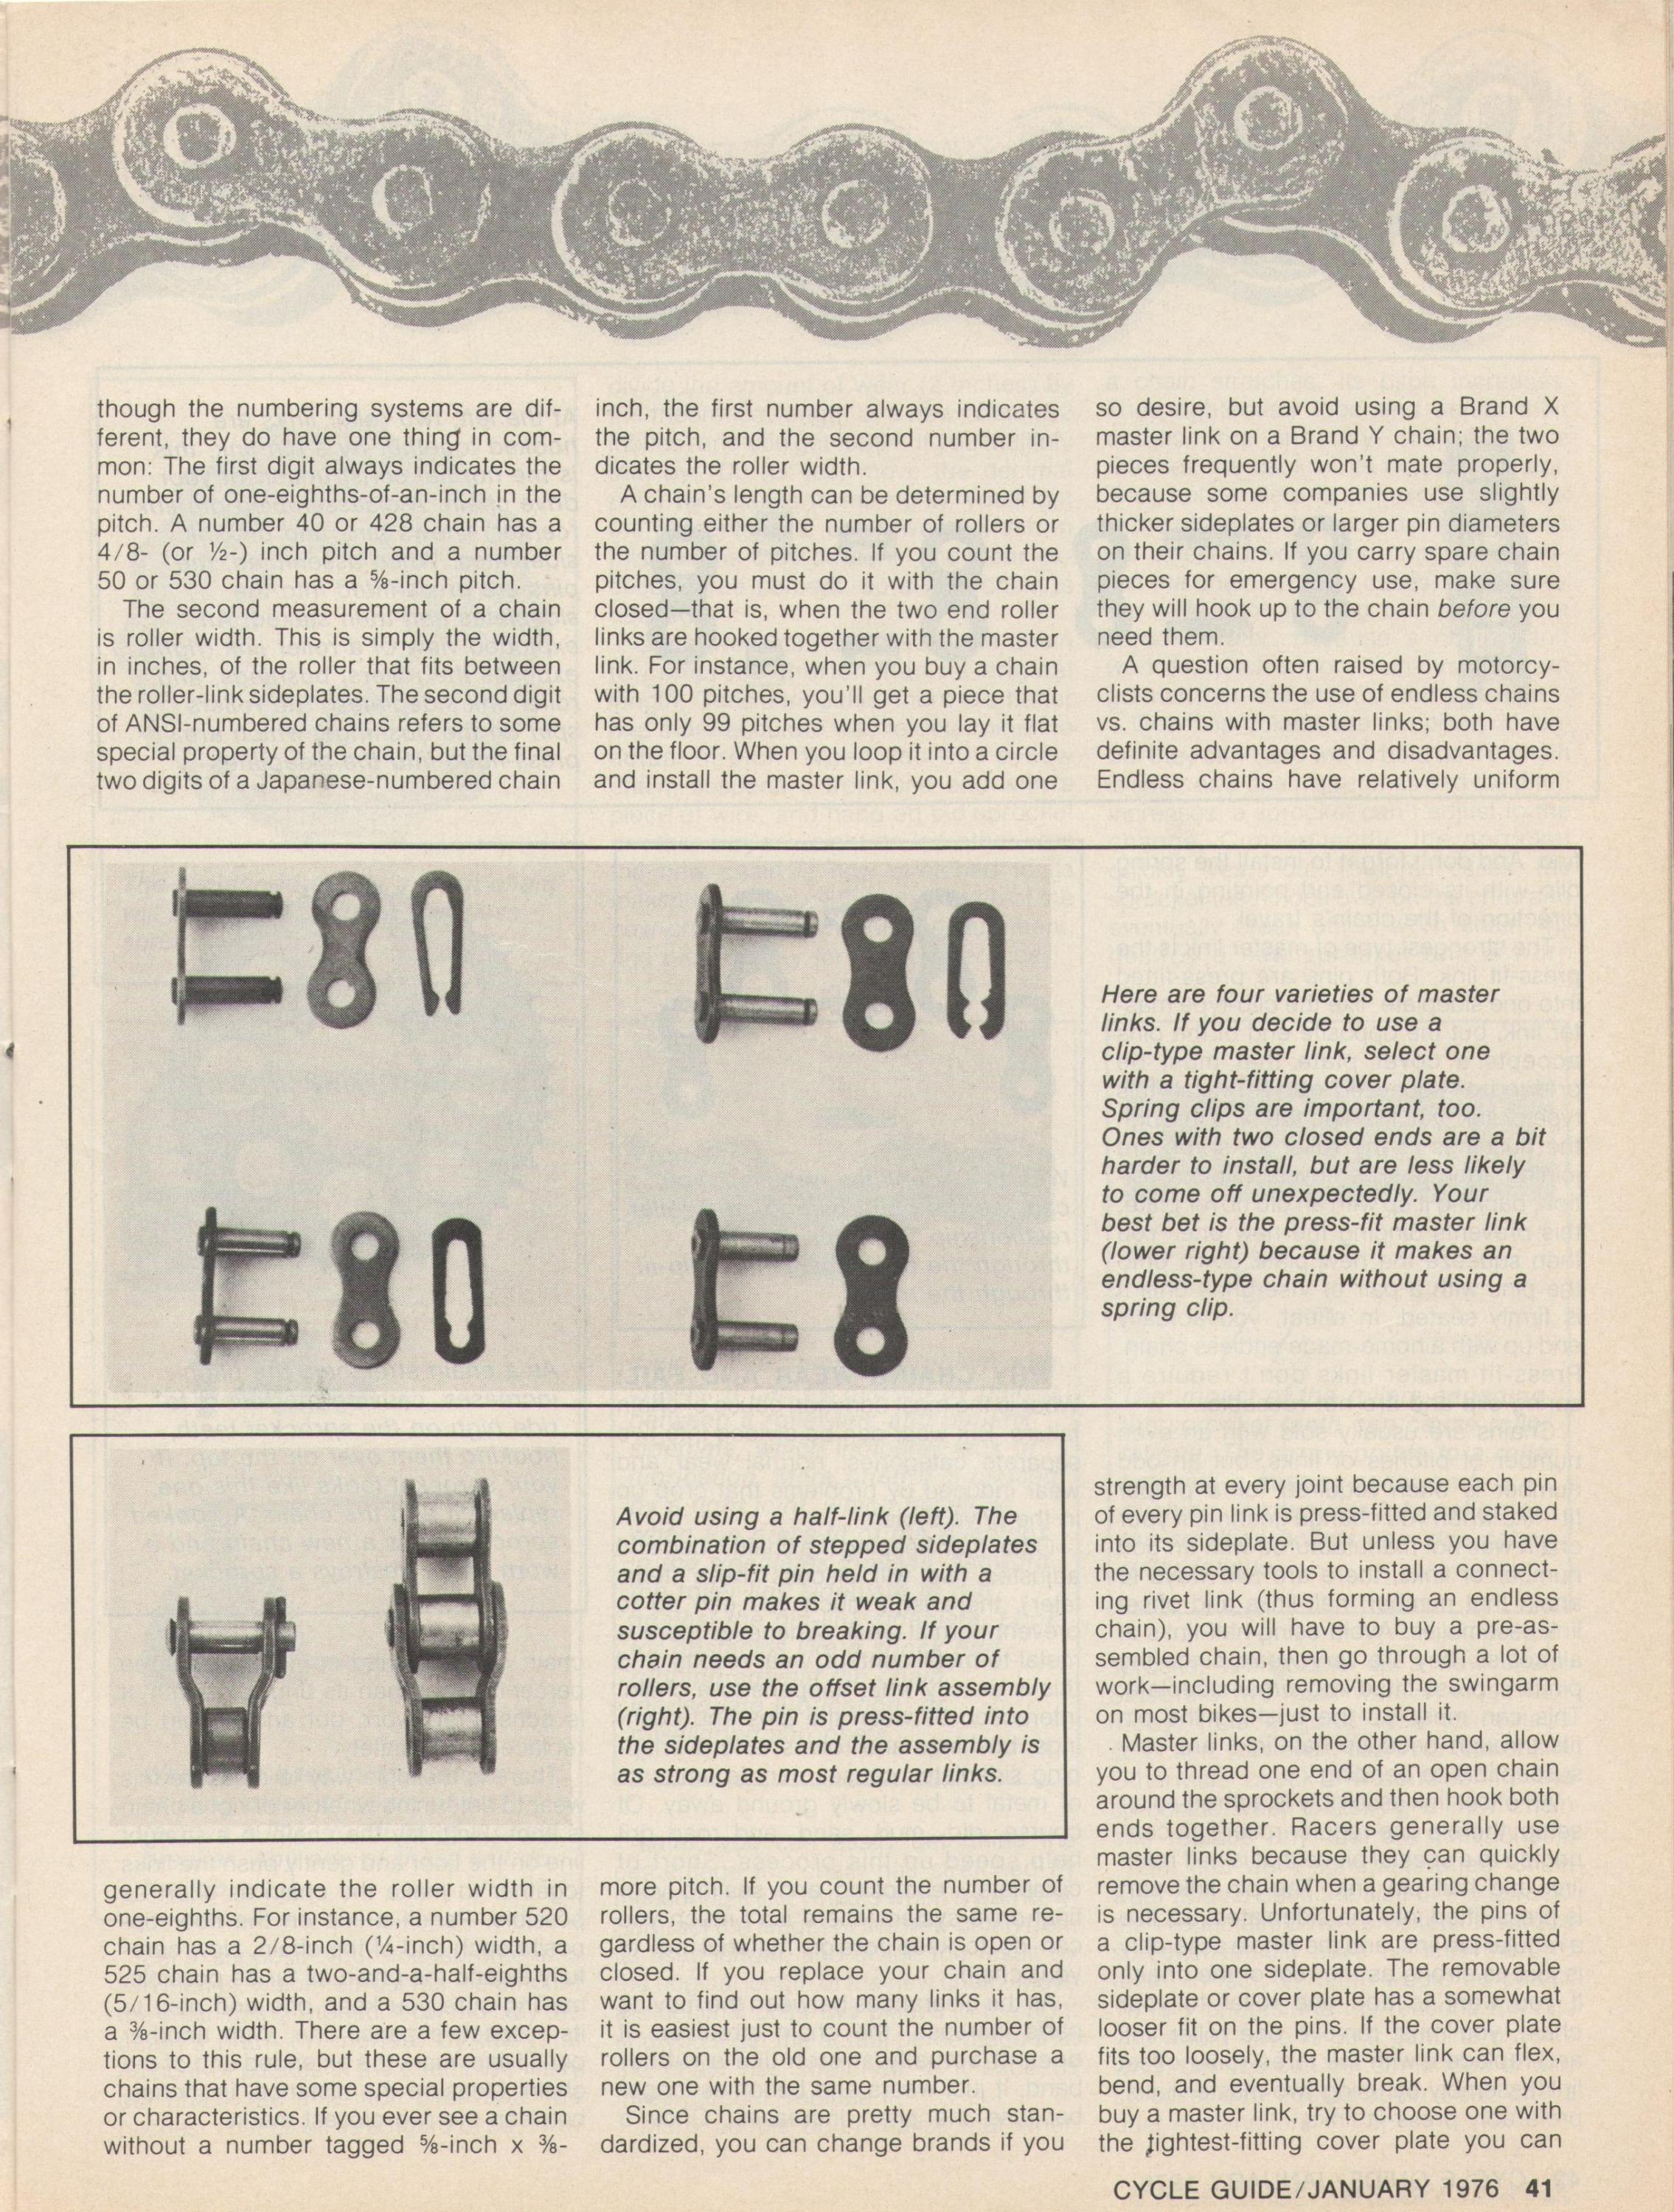 chains tech article cycle guide magazine January 1976-chains-p.2.jpg